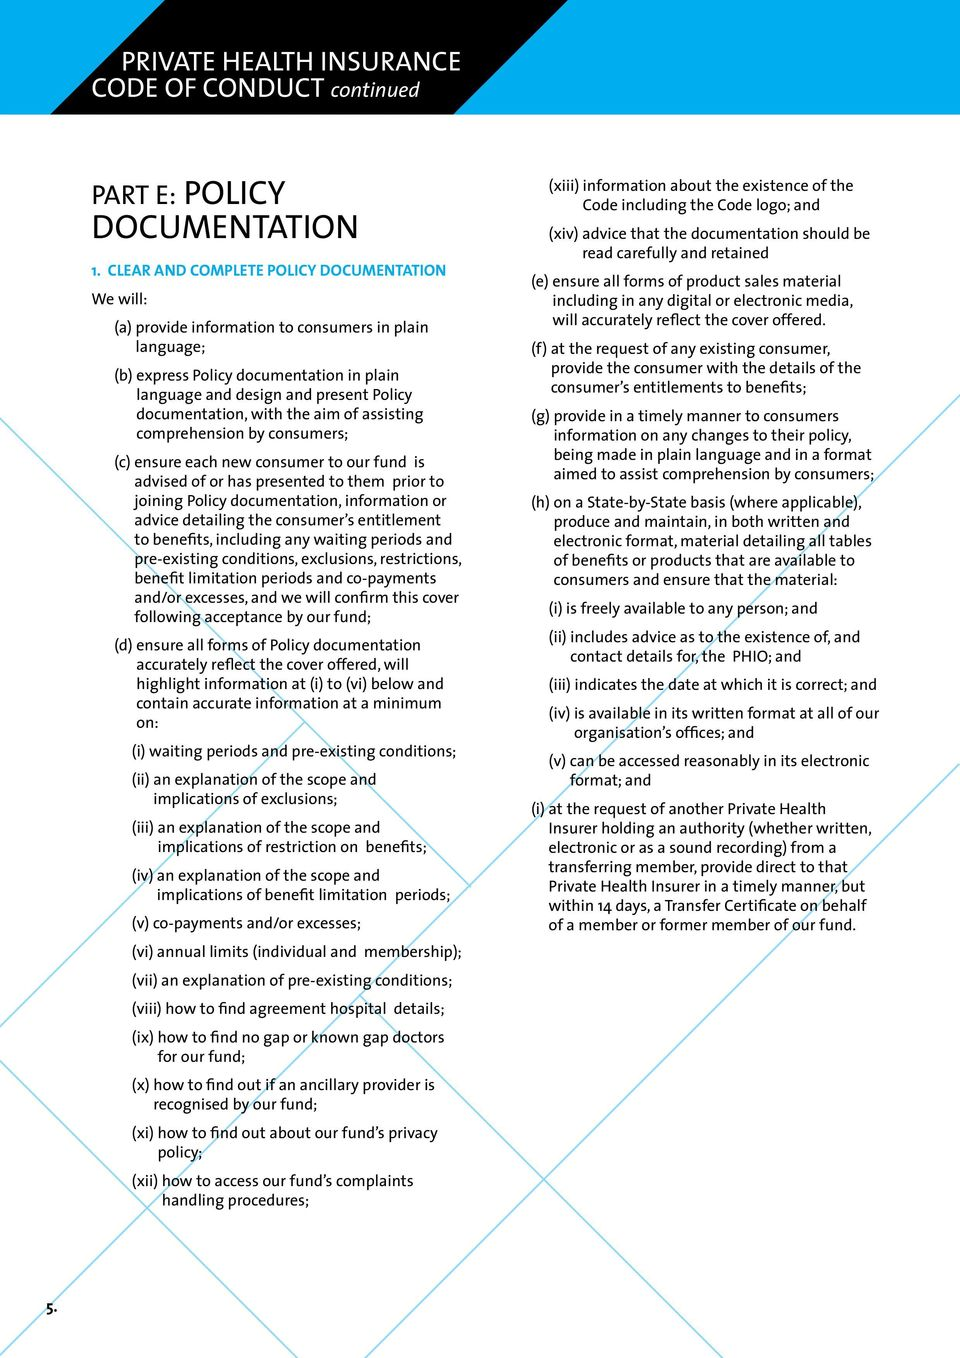 documentation, with the aim of assisting comprehension by consumers; (c) ensure each new consumer to our fund is advised of or has presented to them prior to joining Policy documentation, information